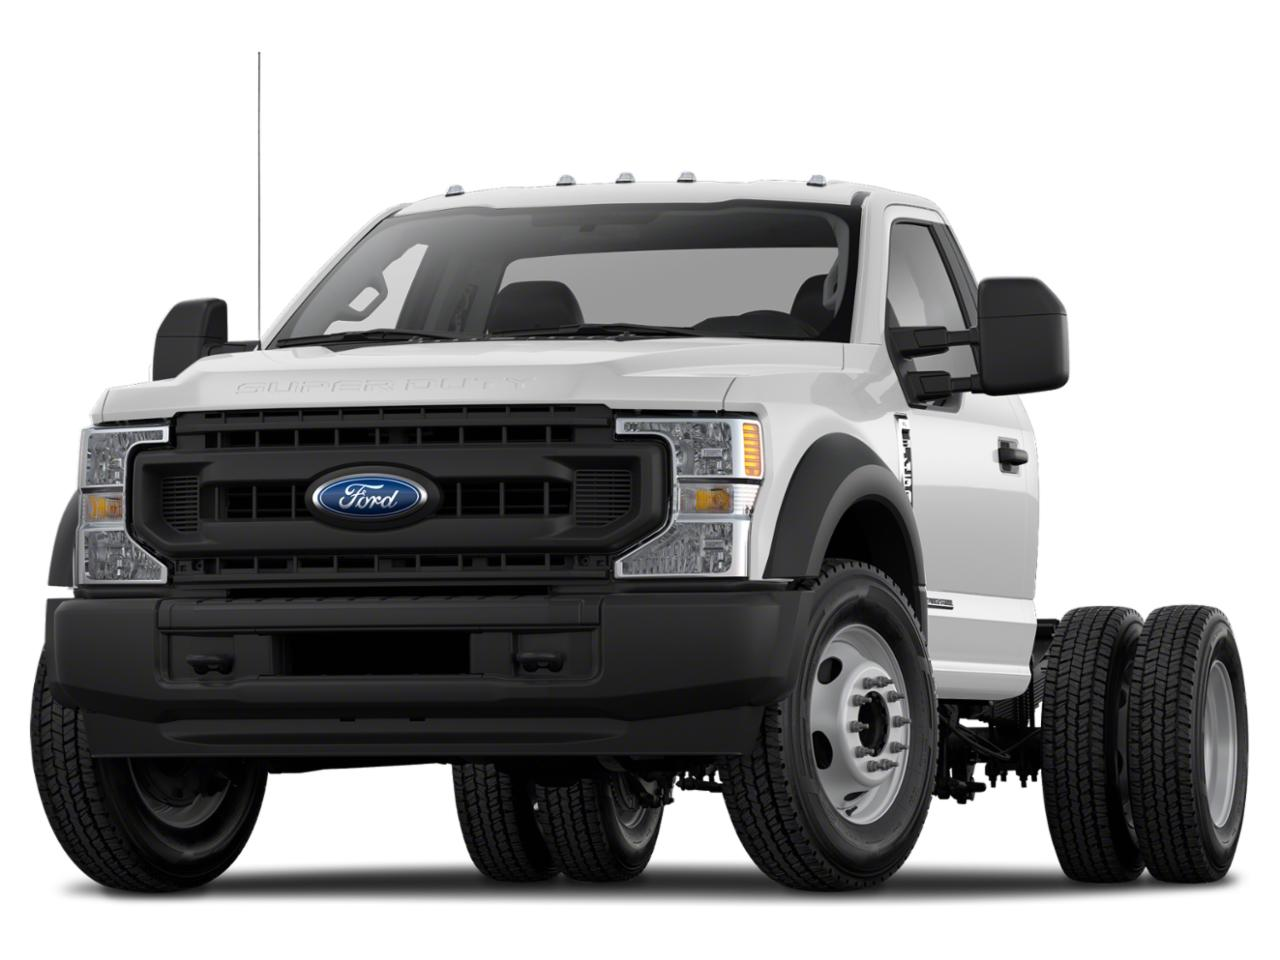 2021 Ford Super Duty F-550 DRW Vehicle Photo in Neenah, WI 54956-3151